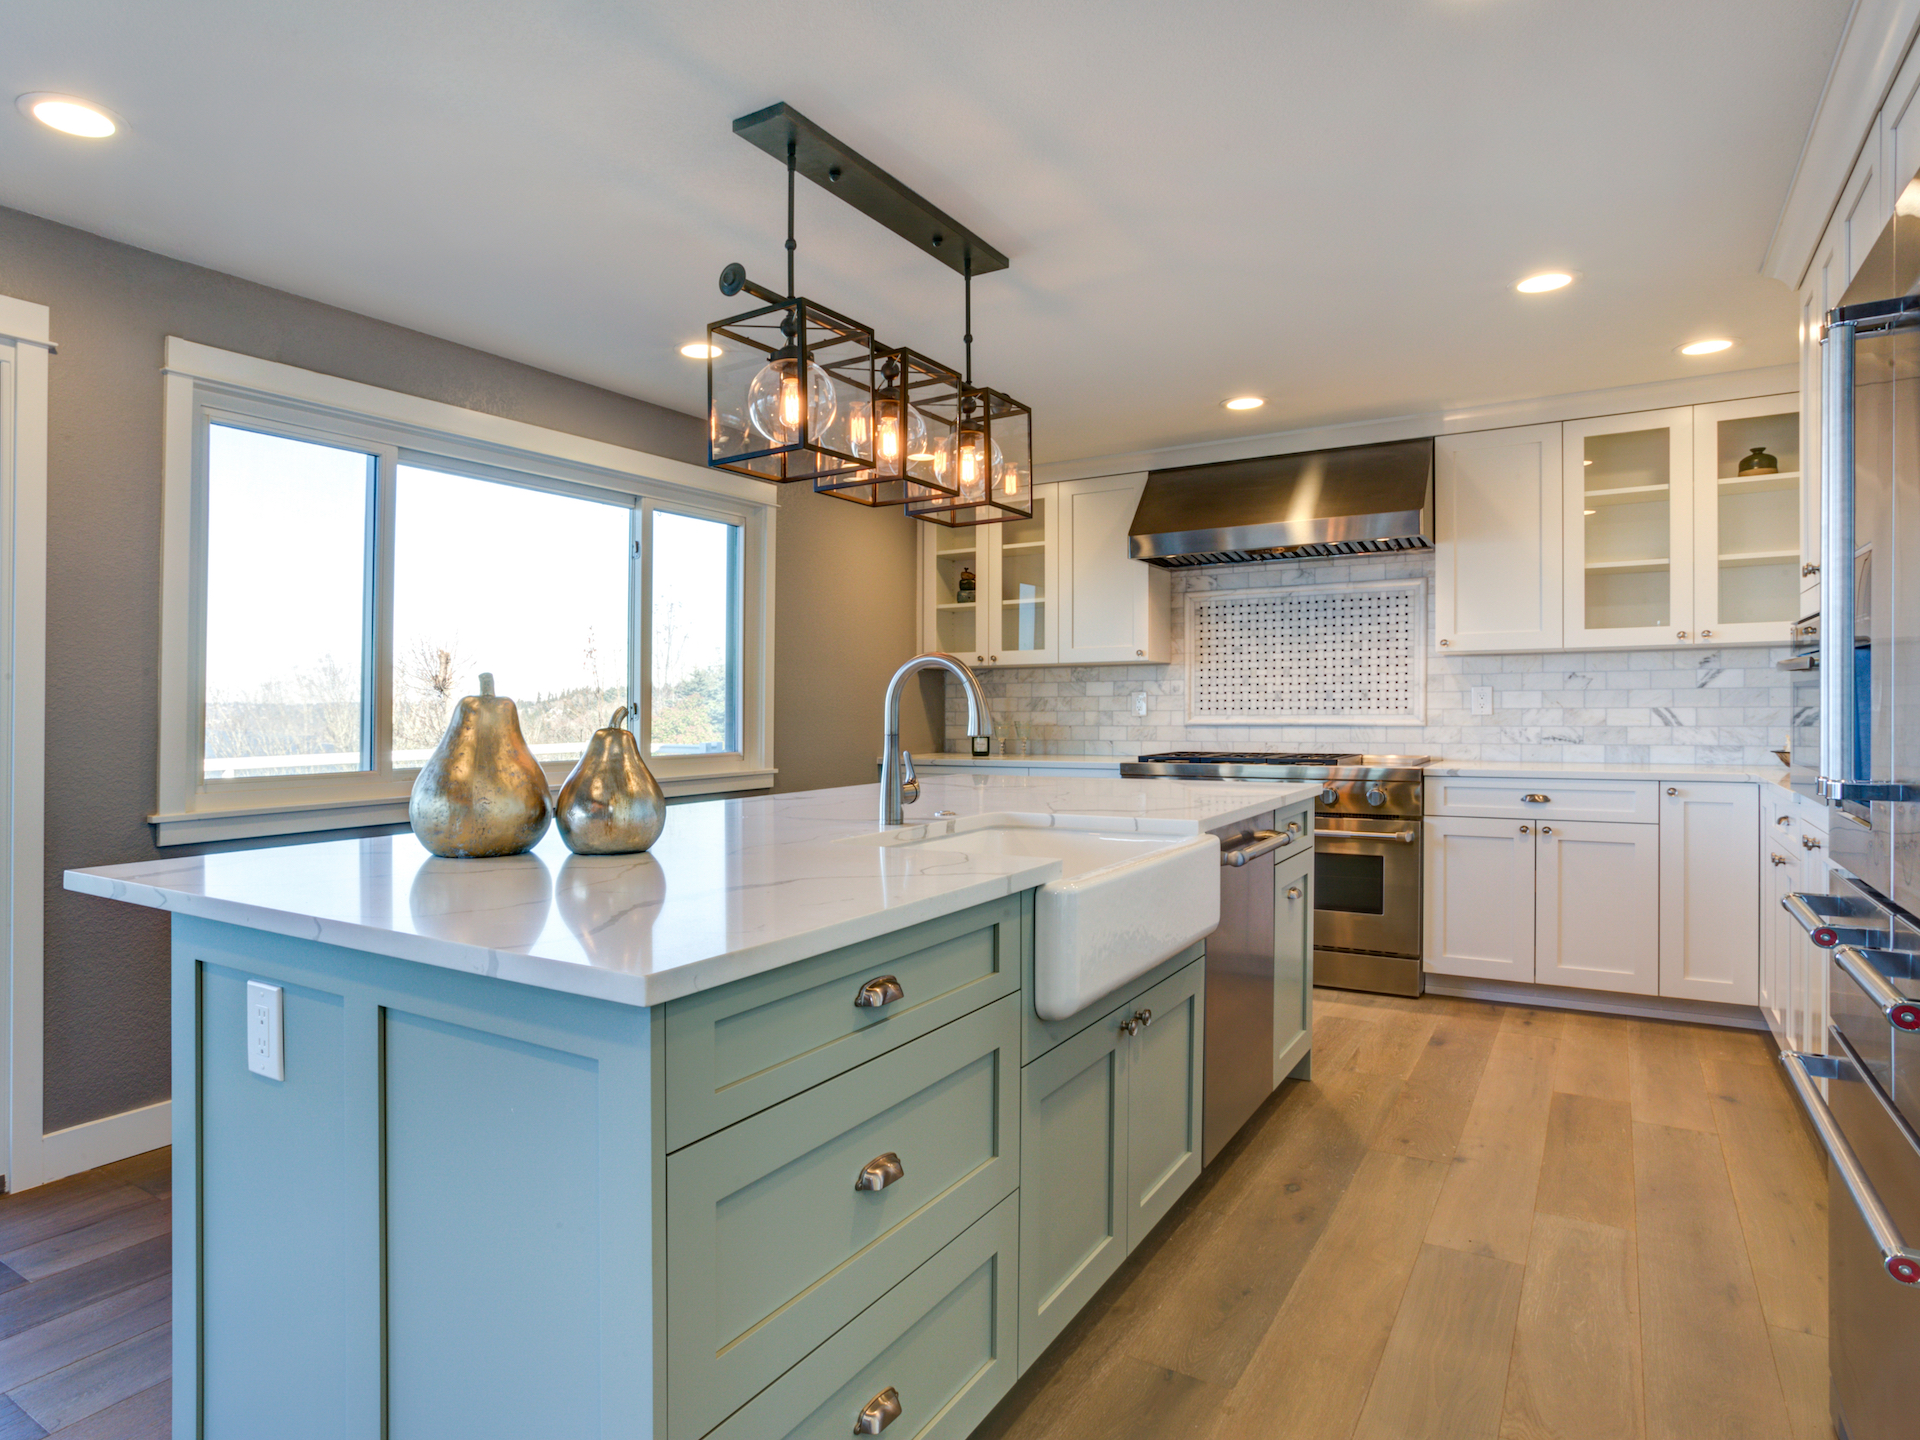 Lime green kitchen island with pendant lighting above